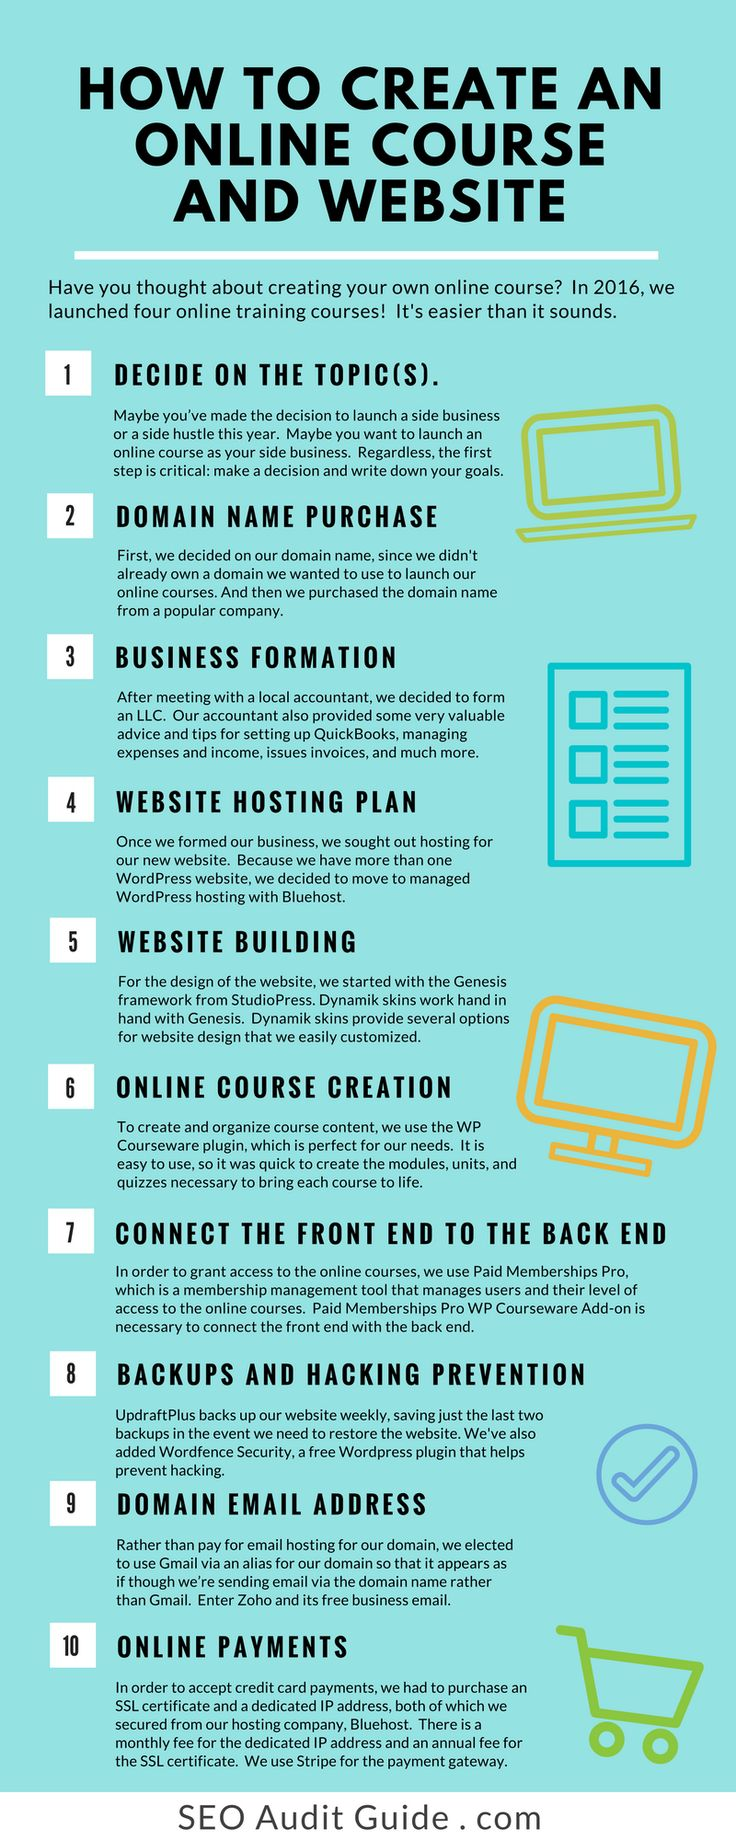 If you're ready to create an online course on your own domain, rather than using a service like Udemy or Teachable, we'll take you through the series of steps that we used to create our website, create our first SEO course, and launch from our own platform.  We outline all of the components we use and recommend for building a website.